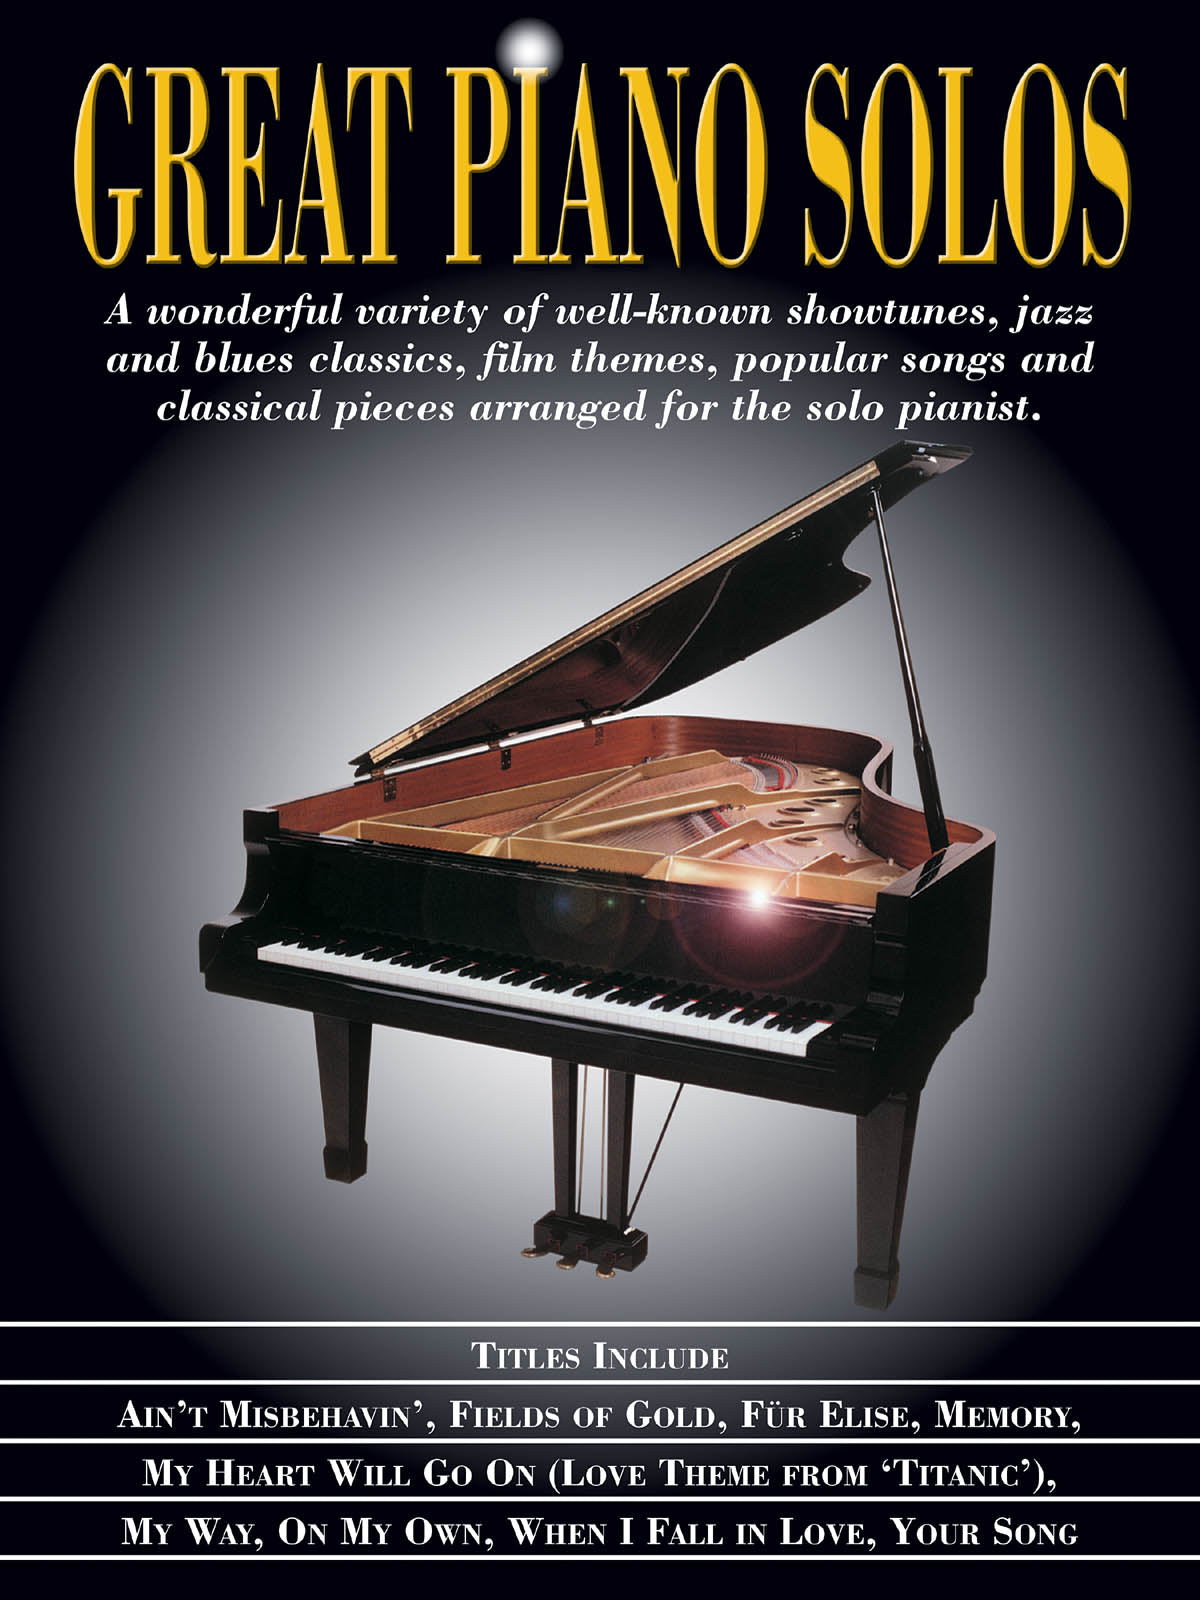 NORTH AMERICAN JV Showtunes, Jazz & Blues, Film Themes, Pop Songs &  Classical Great Piano Solos